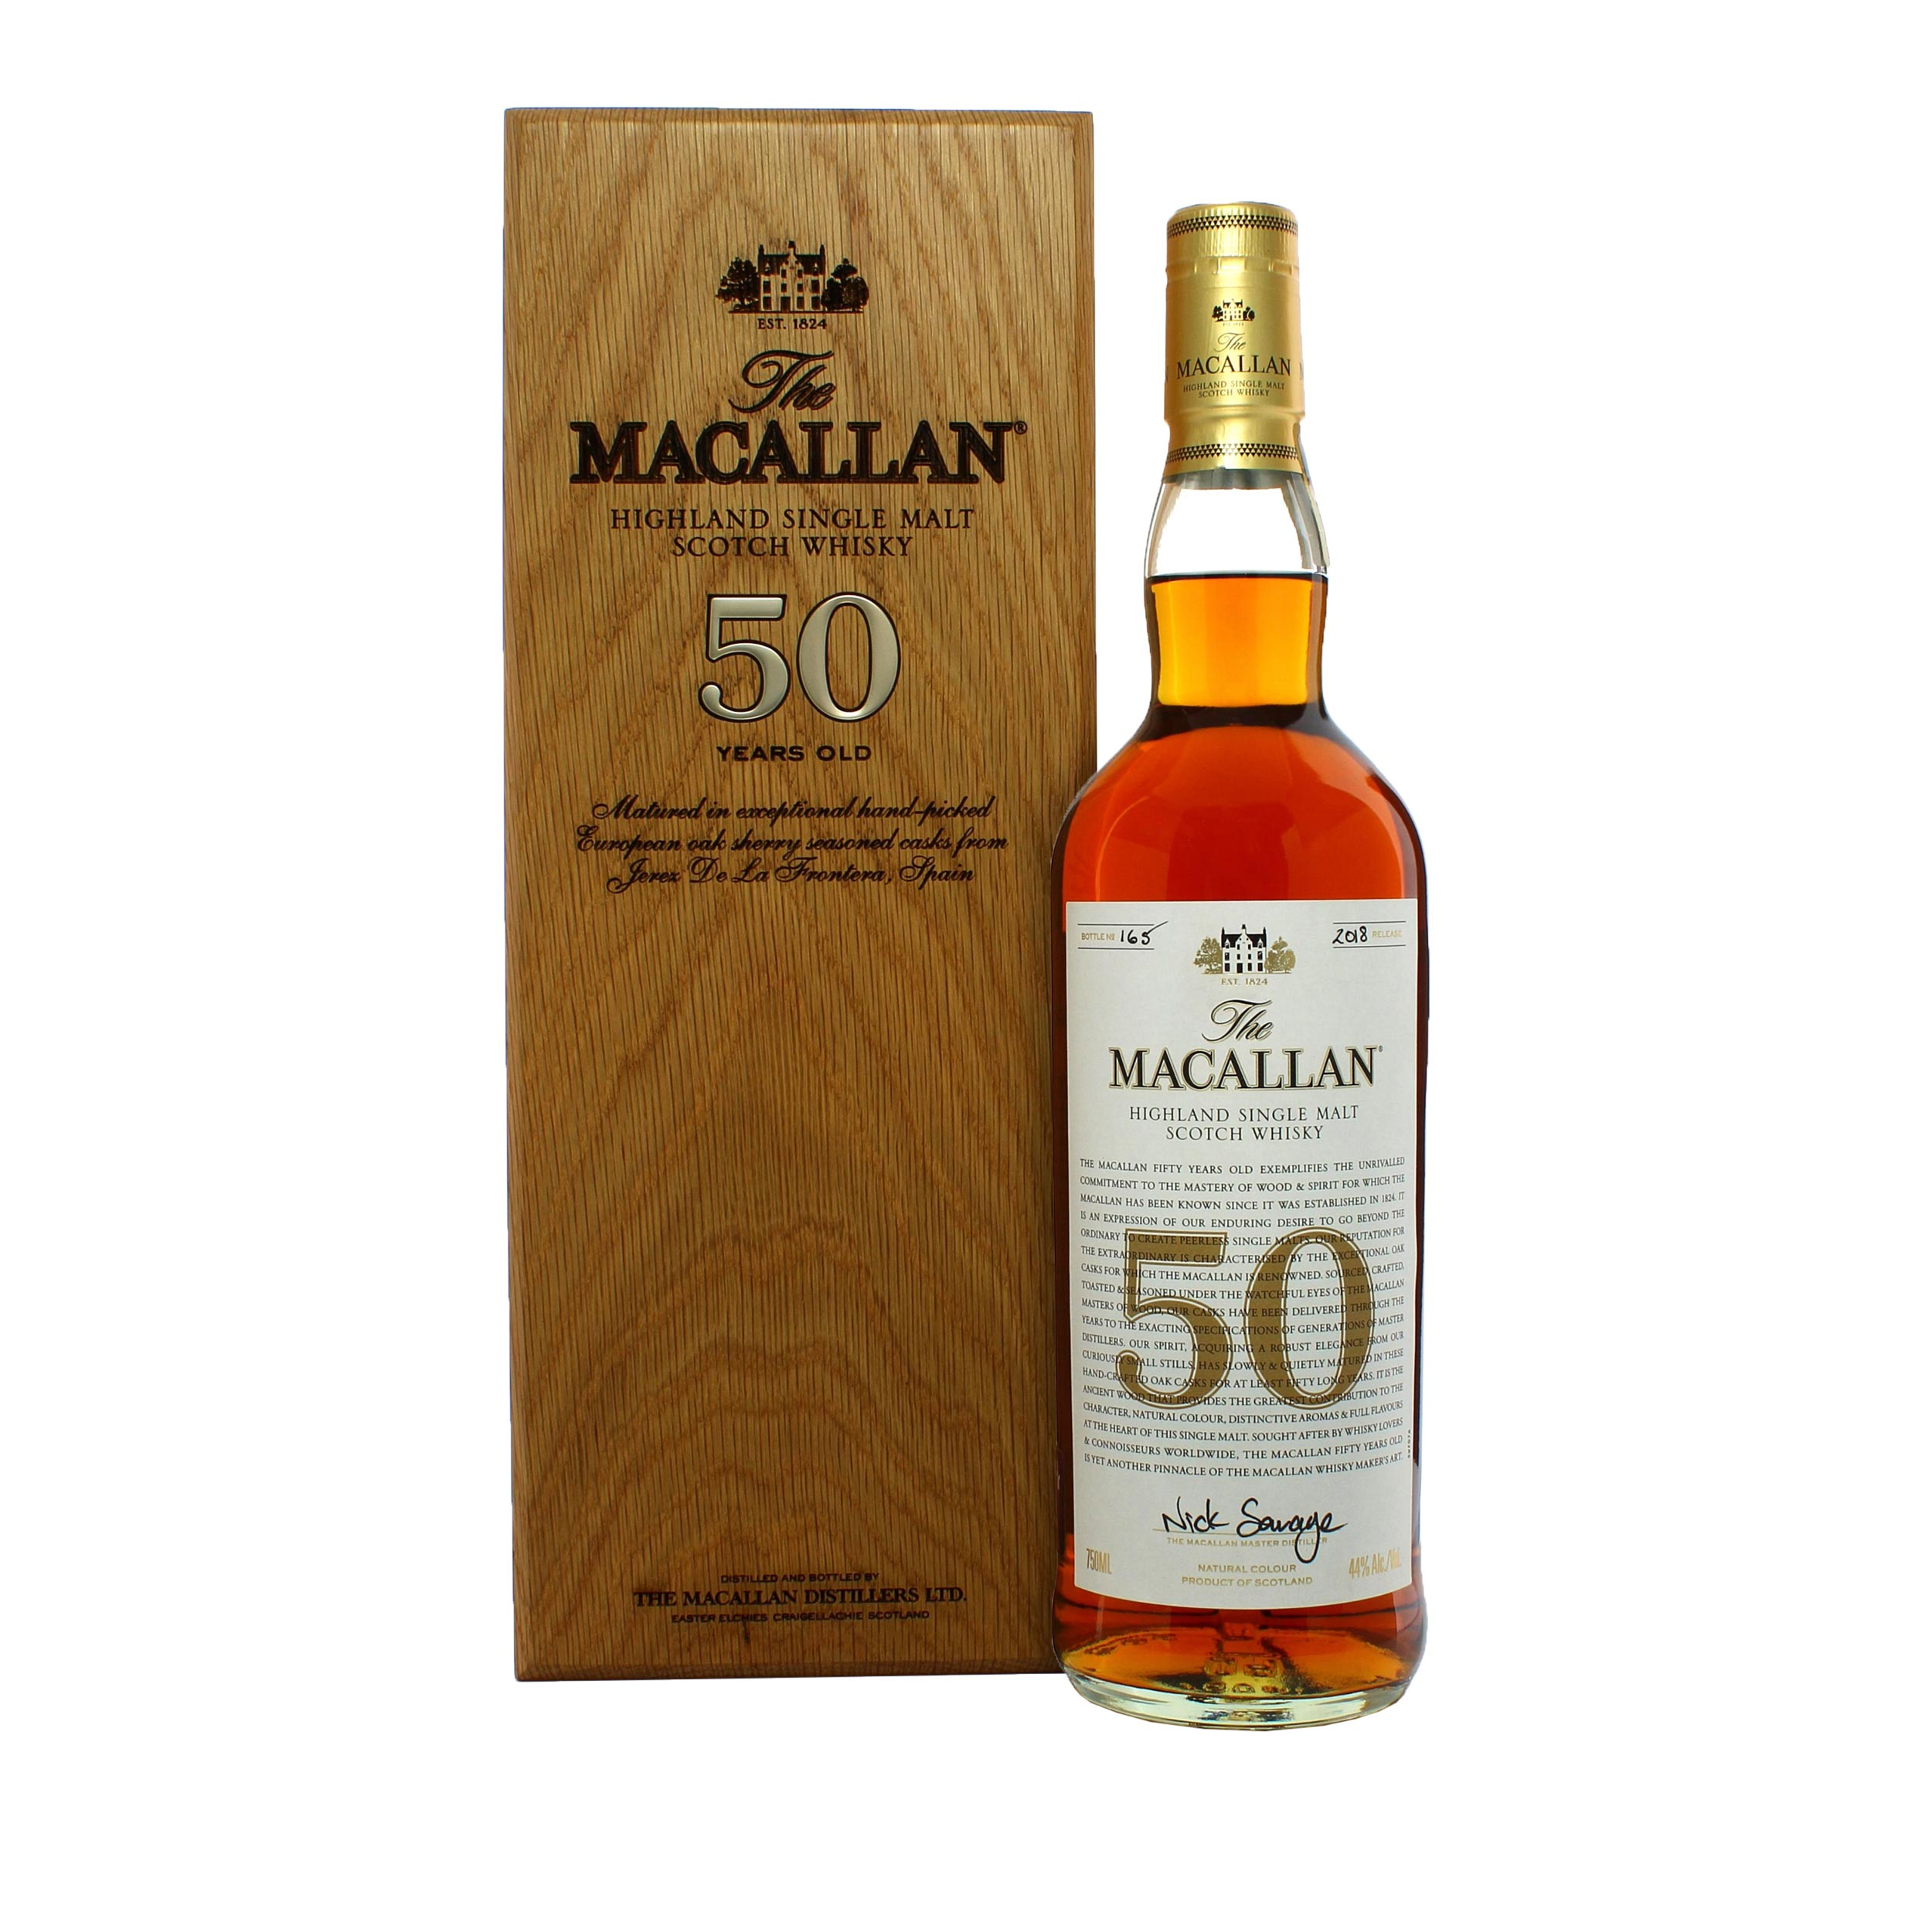 Macallan 50 Year Old Limited Edition Speyside Single Malt Scotch Whisky 75cl